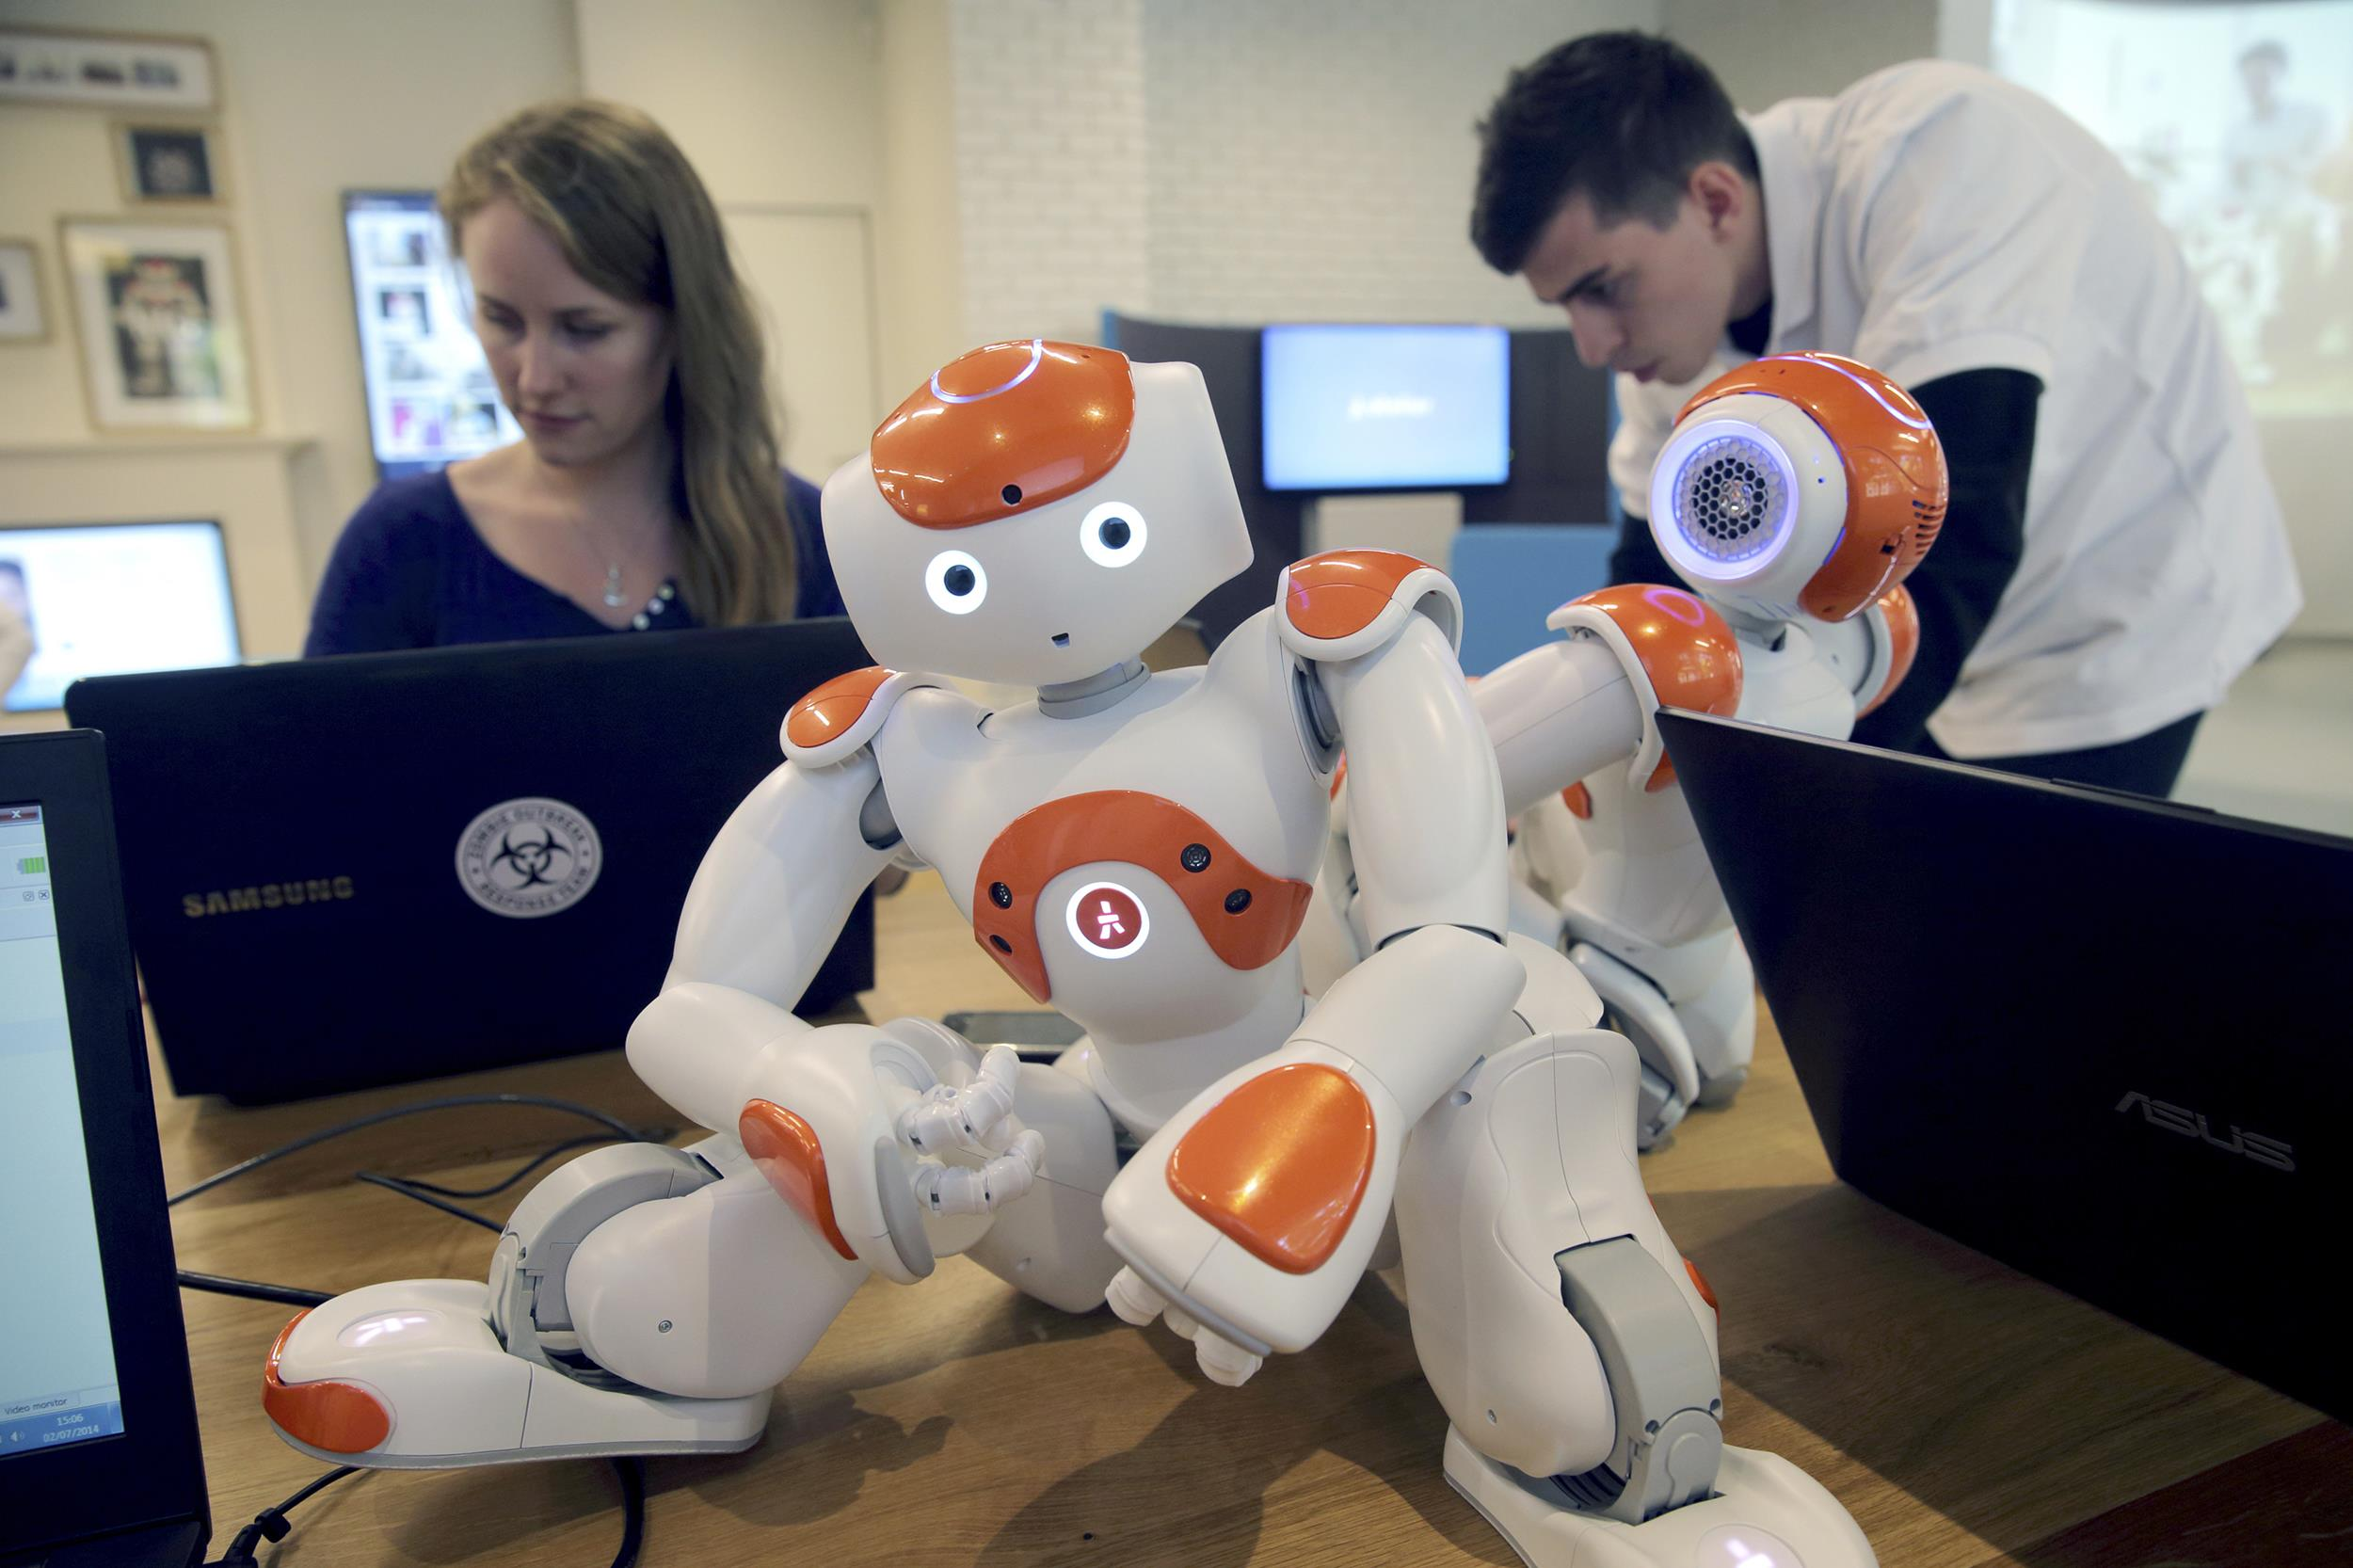 Image: Visitors and staff work on computers next to humanoid robots